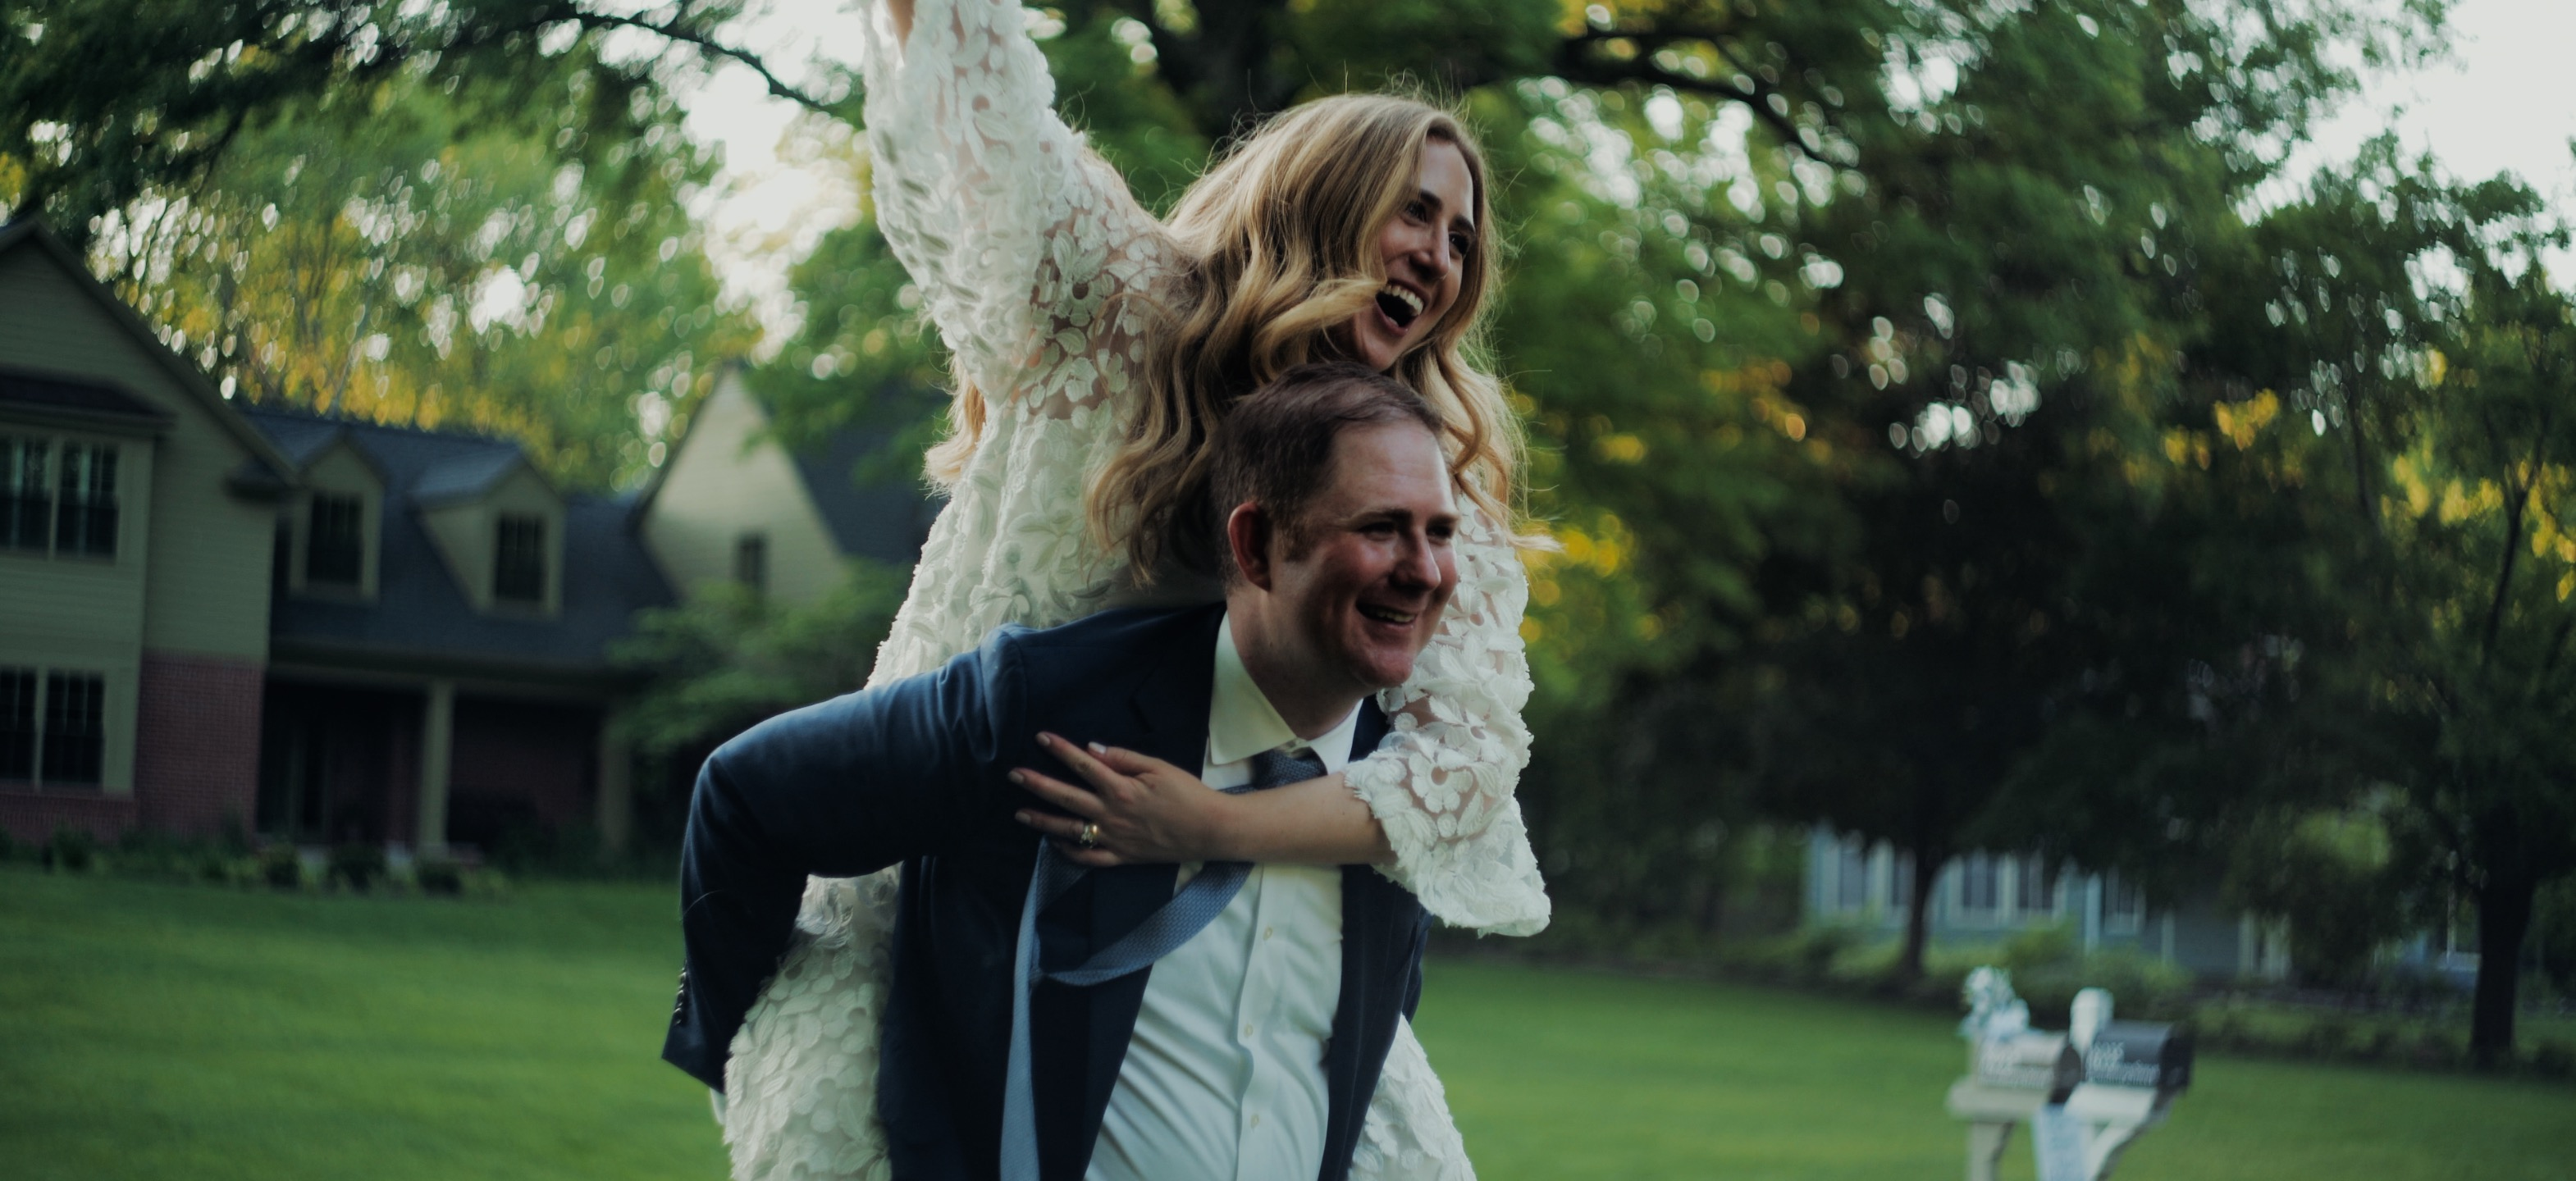 Katie + James | Indianapolis, Indiana | Home